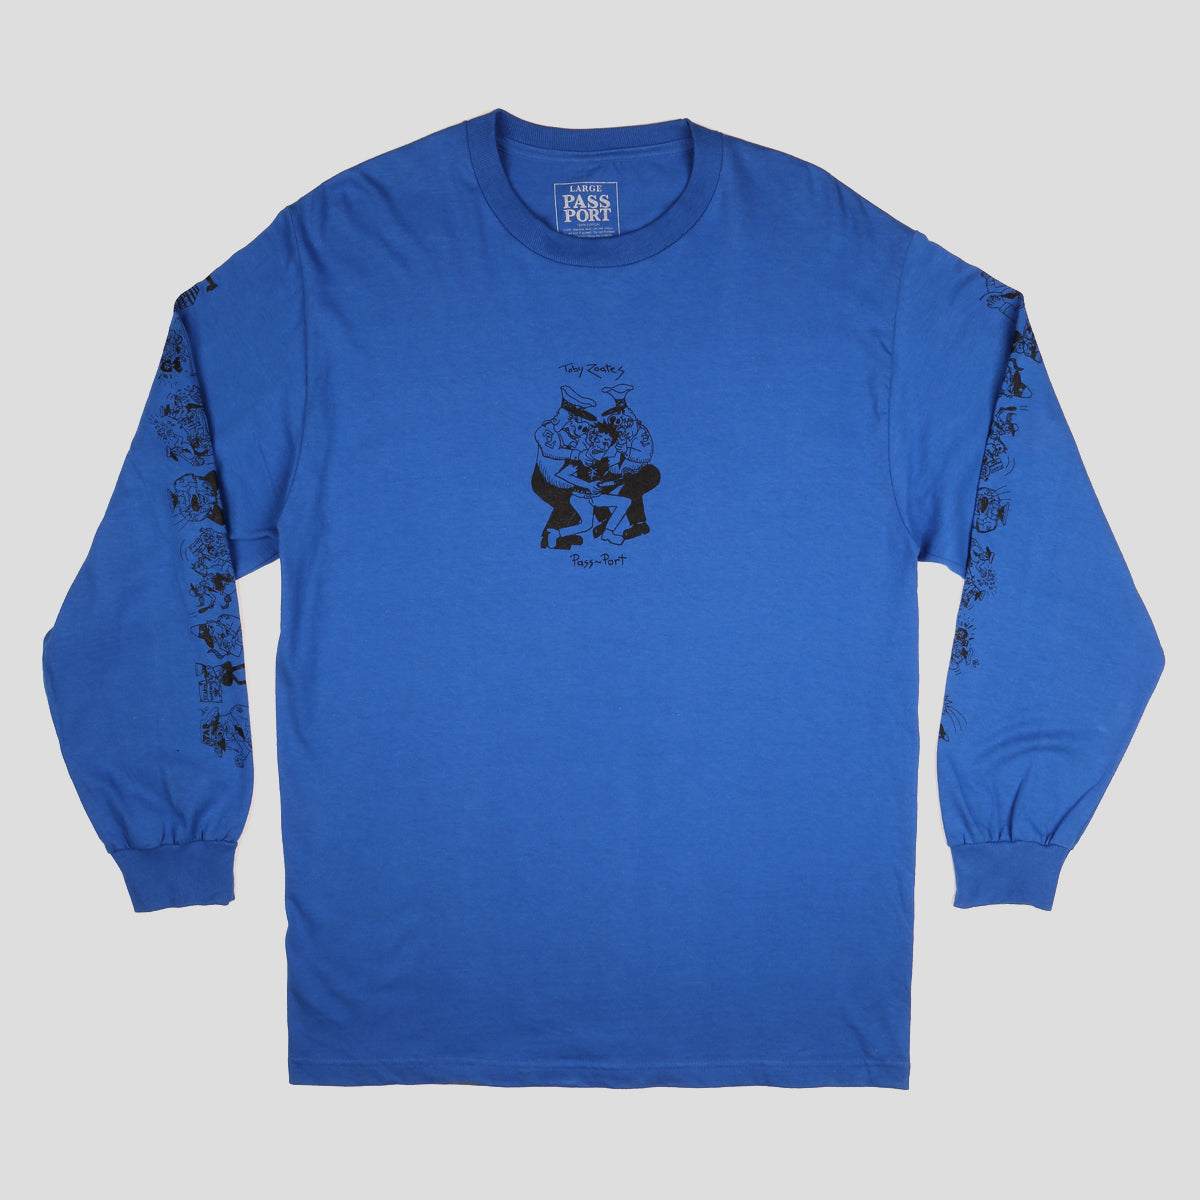 "PASS~PORT TOBY ZOATES ""COPPERS"" L/S TEE ROYAL BLUE"